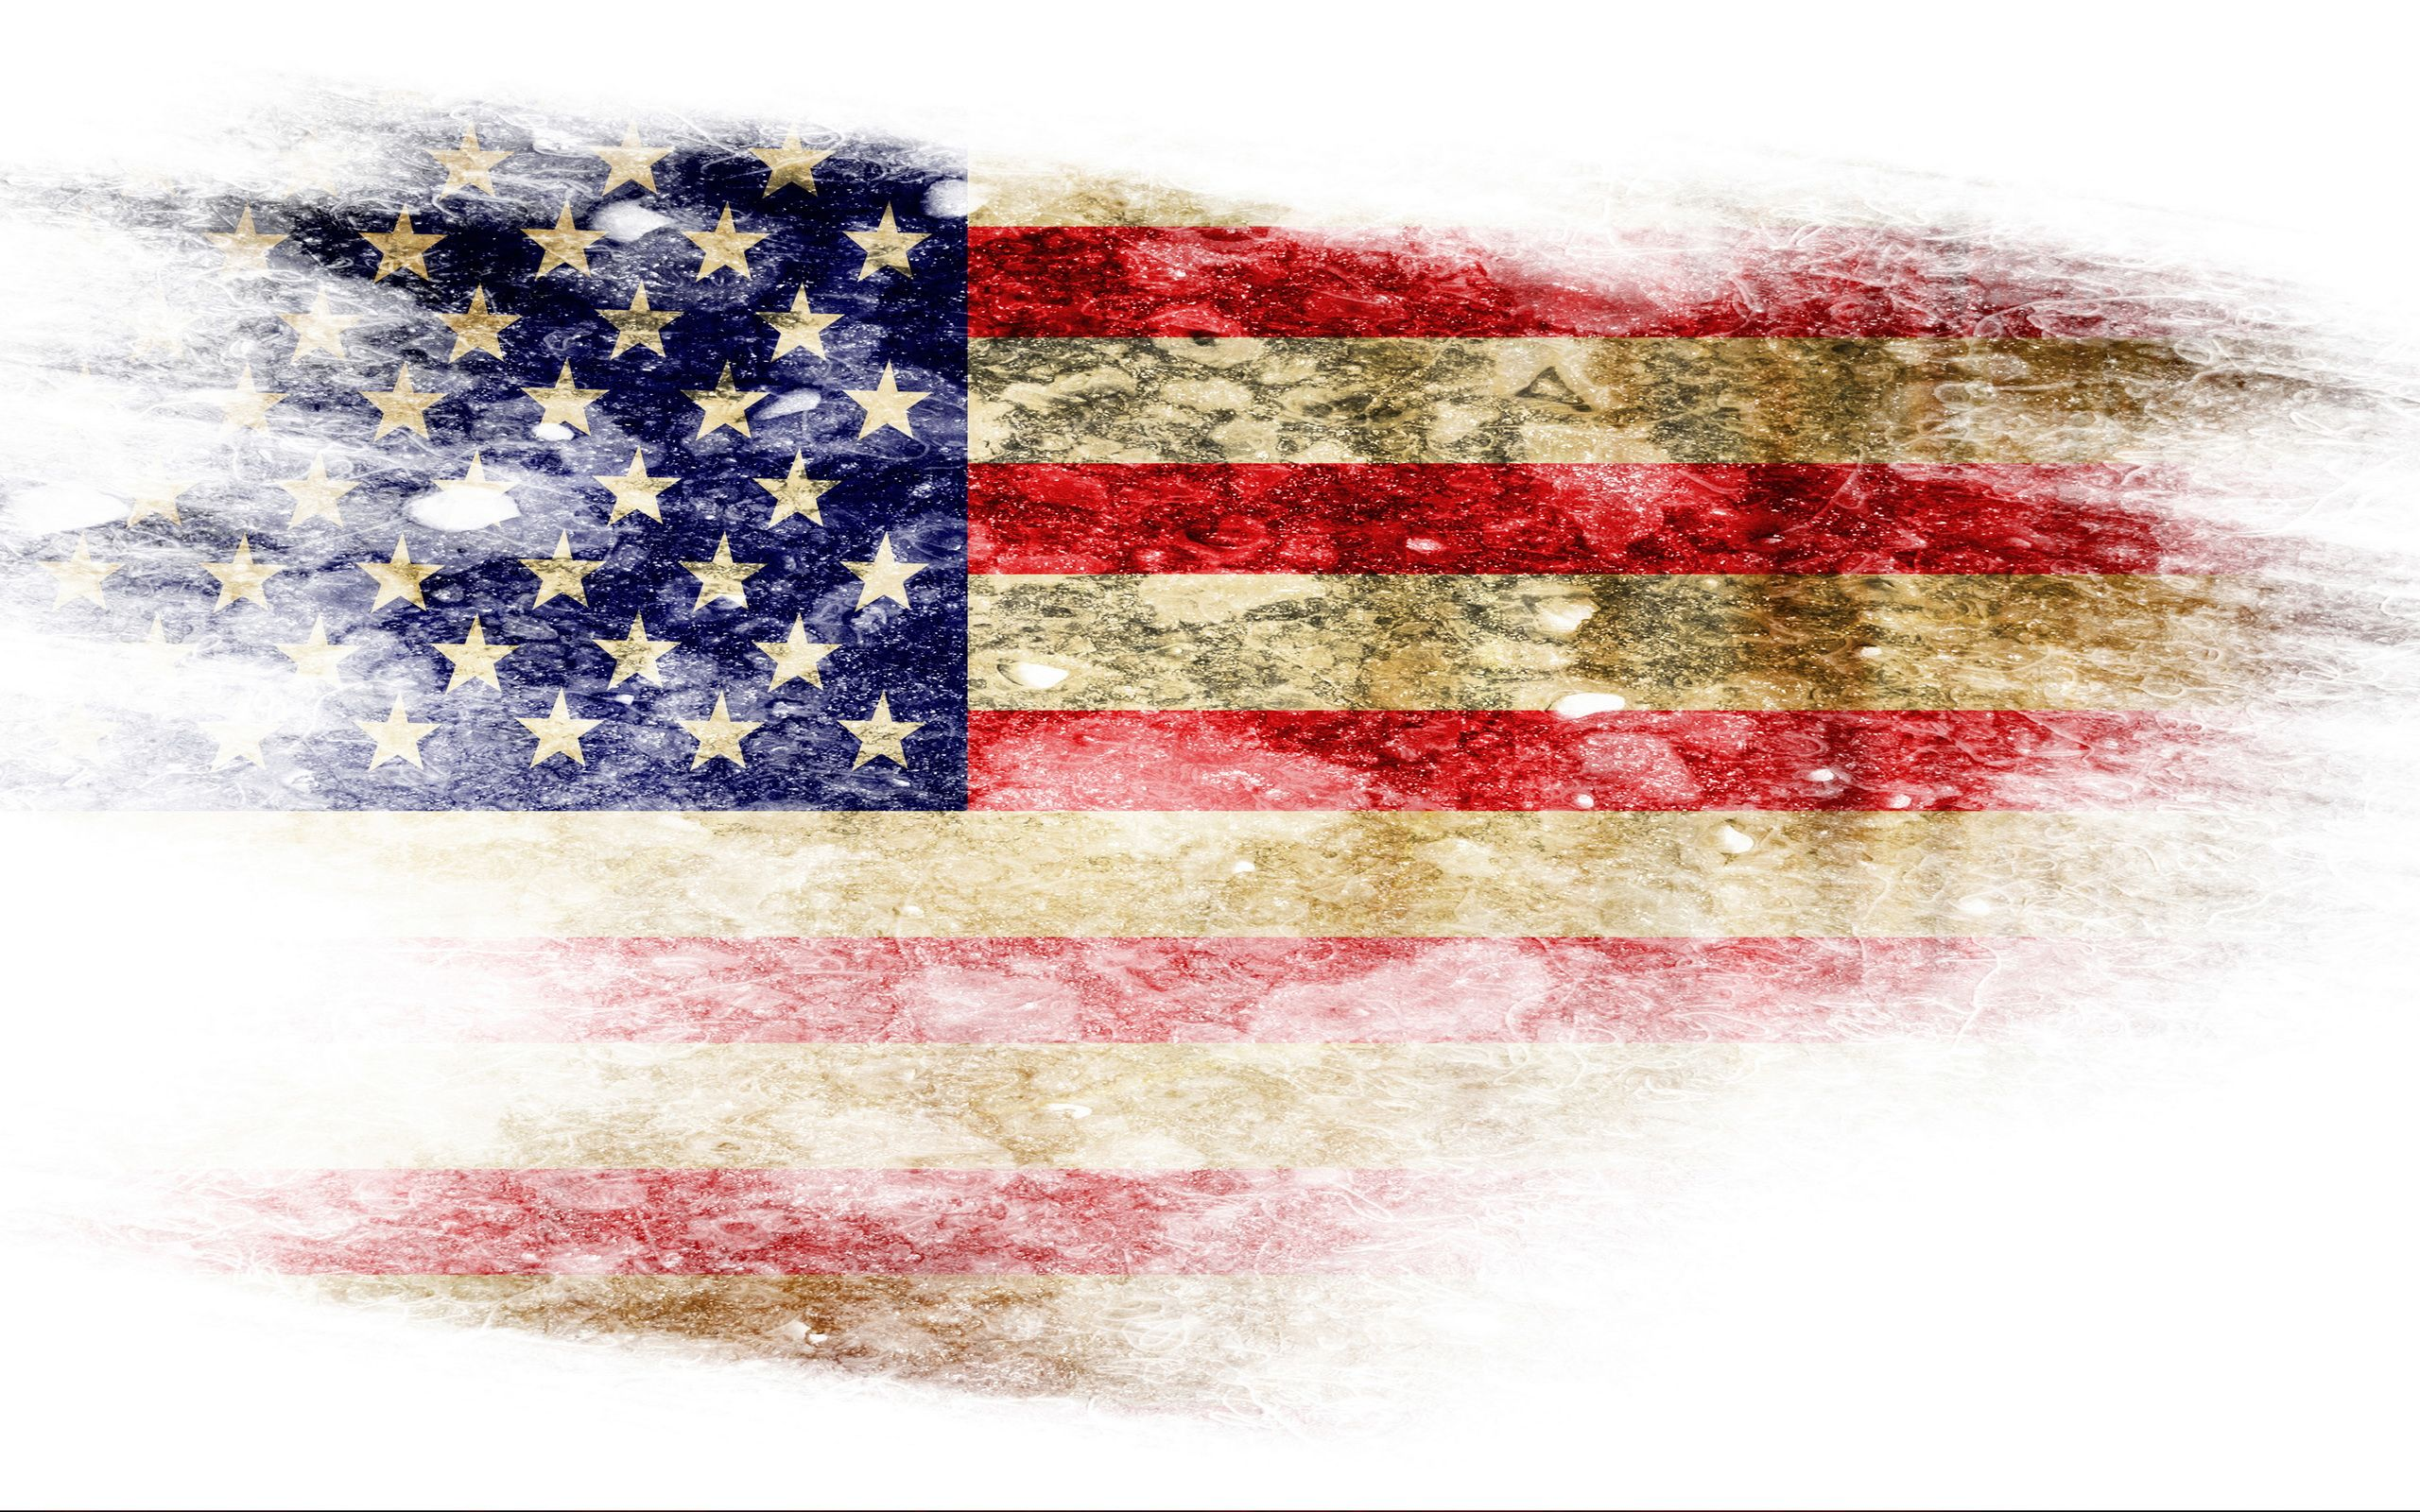 American Flag Backgrounds Wallpapers Backgrounds Images Art Photos American Flag Art Flag Background American Flag Background